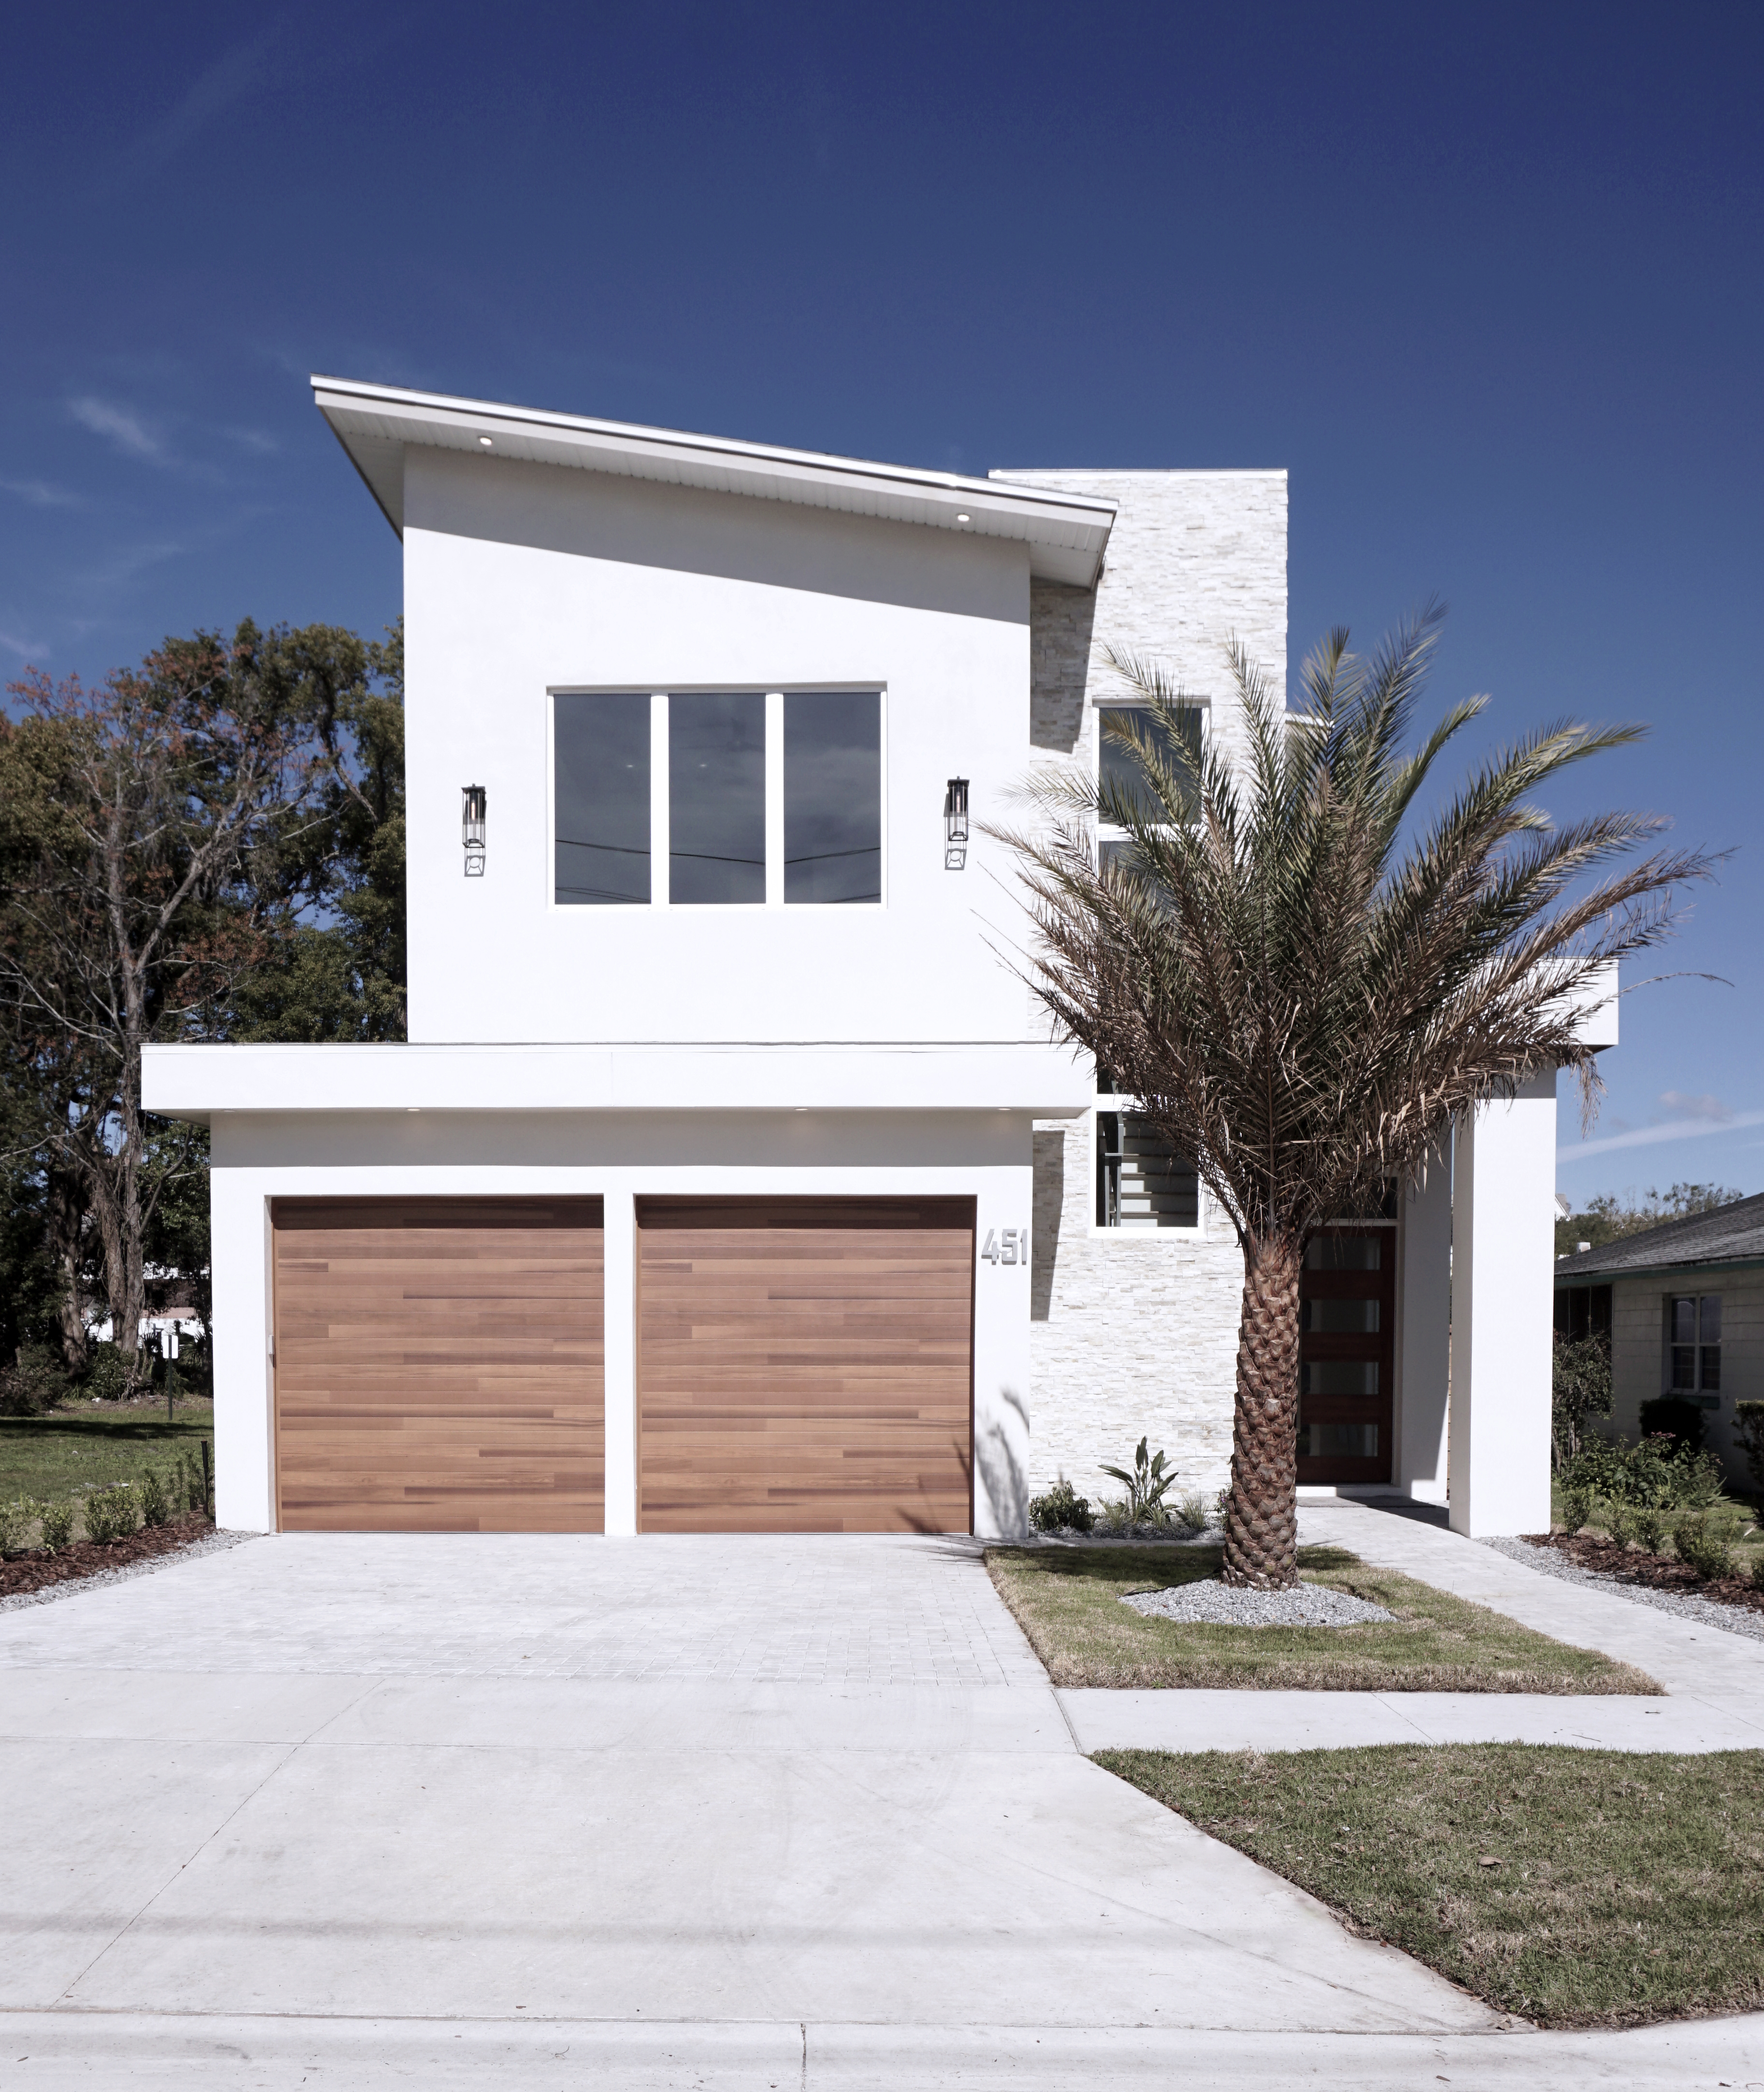 Affinity At Winter Park Home: 451 W. Comstock Ave, Winter Park FL